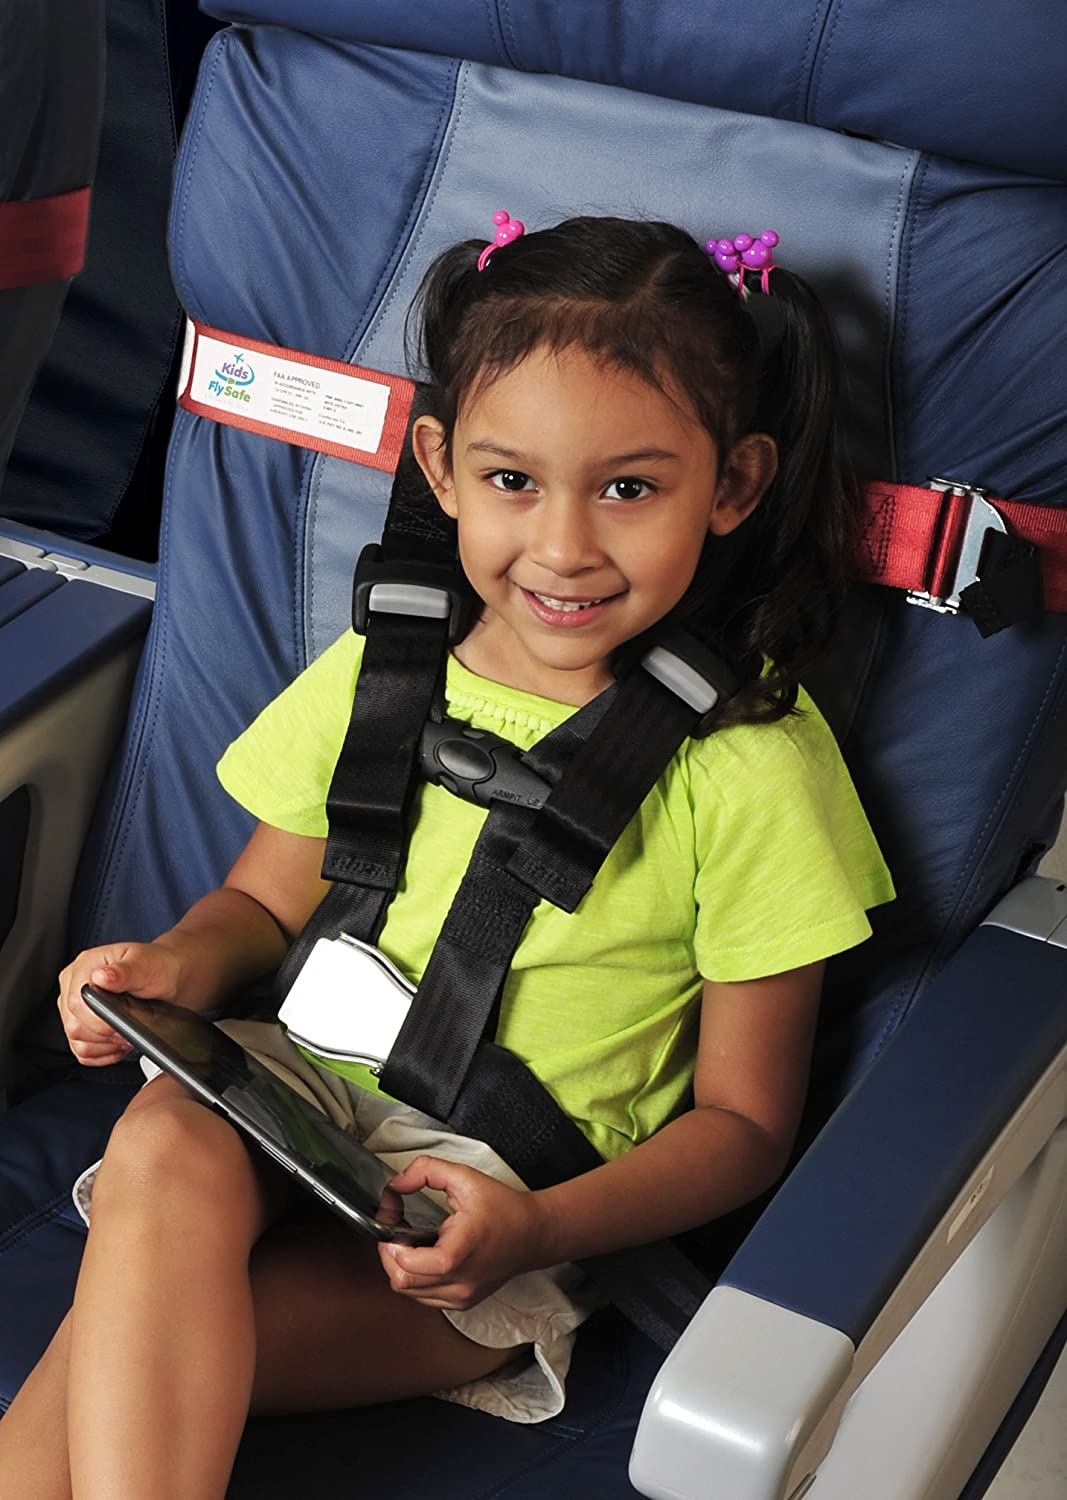 New Cares Child Airplane Travel Harness Safety Seat Belt